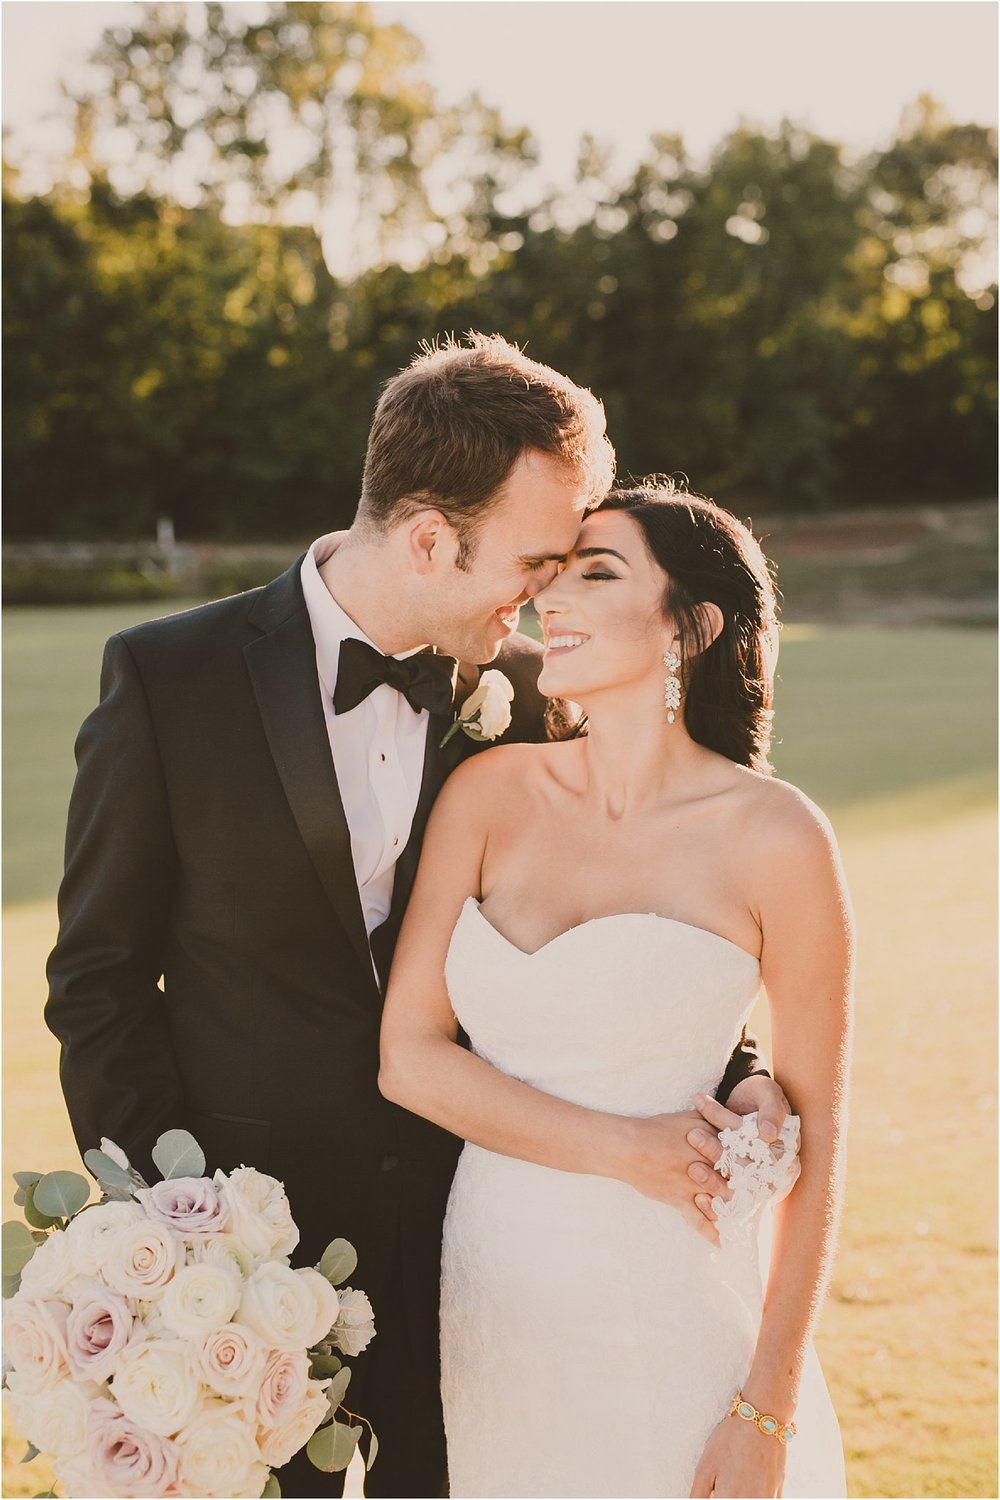 PattengalePhotography_BohoWedding_RichmondVirginia_Photographer_SevenSprings_Manor_Estate_Wedding_Mariam&Jay_Elegant_Fall_Bohemian_blush_gold_persian_glam_glamorous__0076.jpg